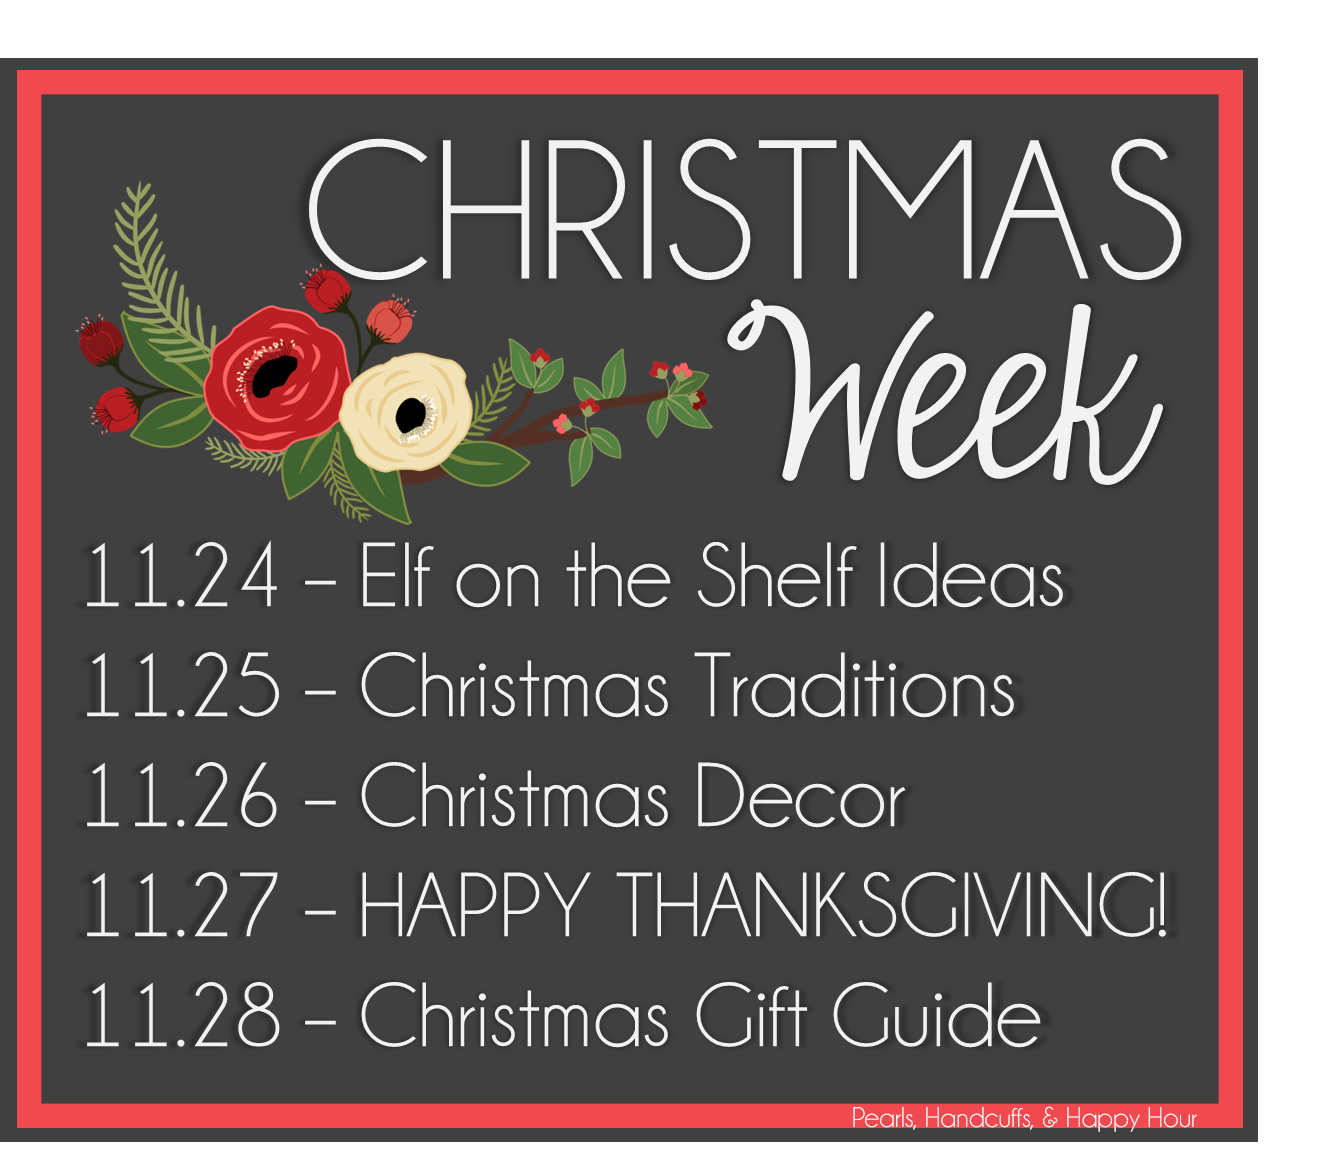 Pearls, Handcuffs, and Happy Hour: Elf on the Shelf Ideas ...